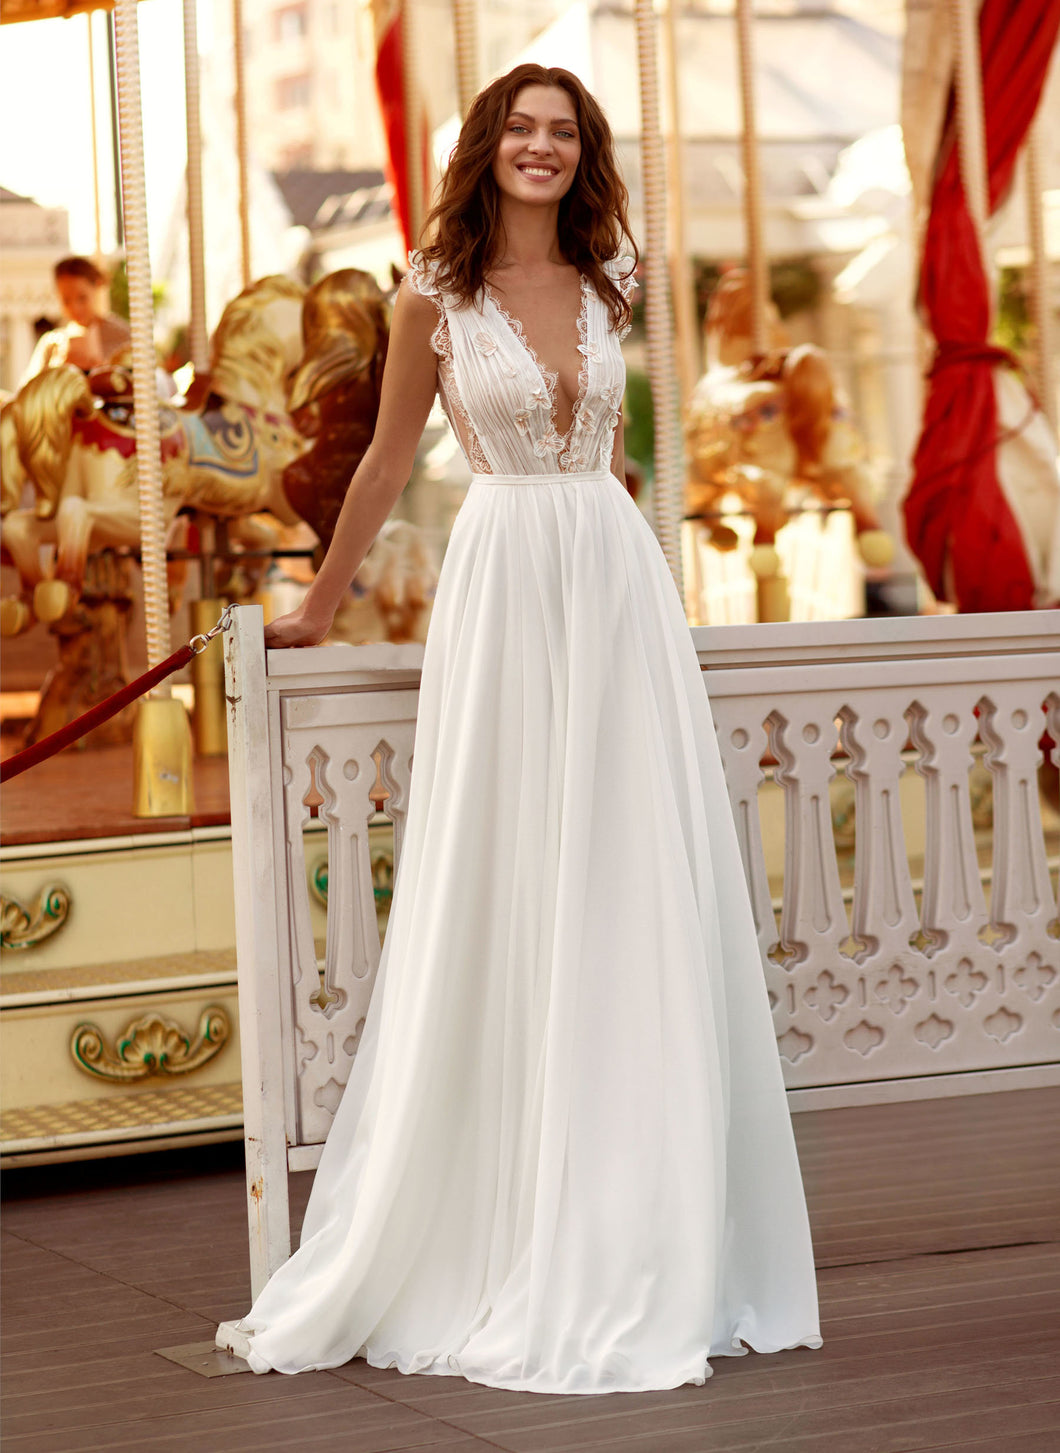 Cosmopolitan City  Papilio Bridal RTW 11938-180 Ready To Wear European Bridal Wedding Gown Designer Philippines